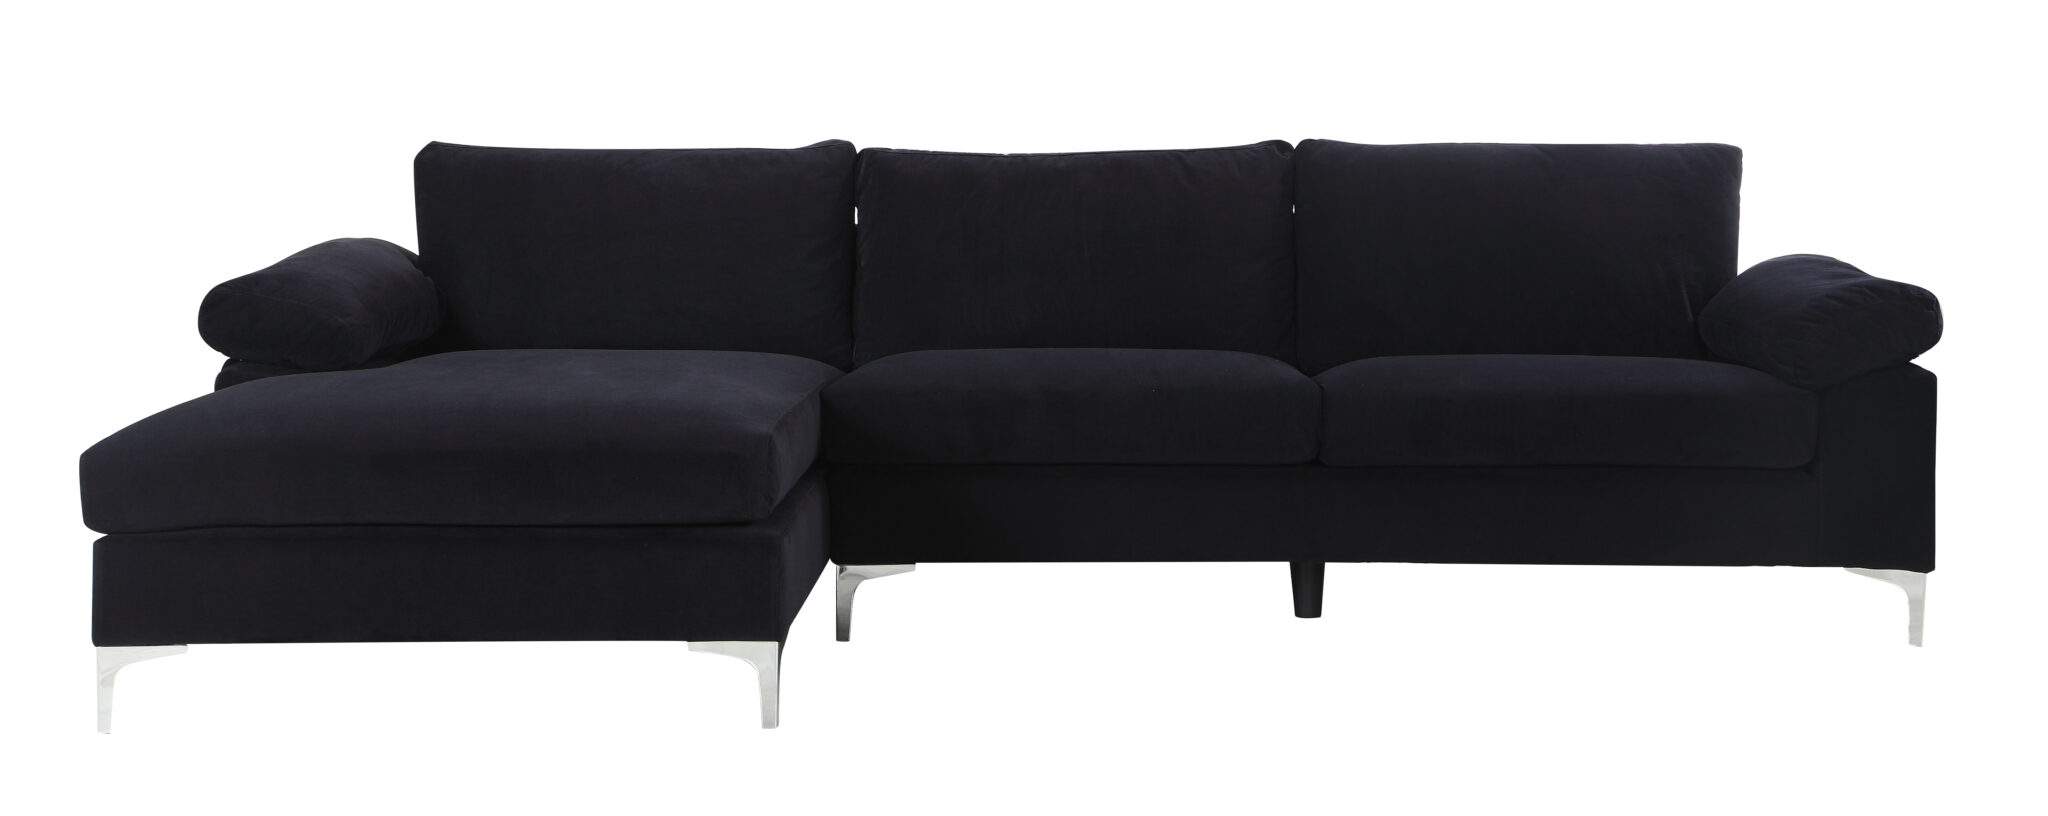 Mobilis Modern Large Microfiber Velvet Fabric L-Shape Sectional Sofa with Extra Wide Chaise Lounge $600.00